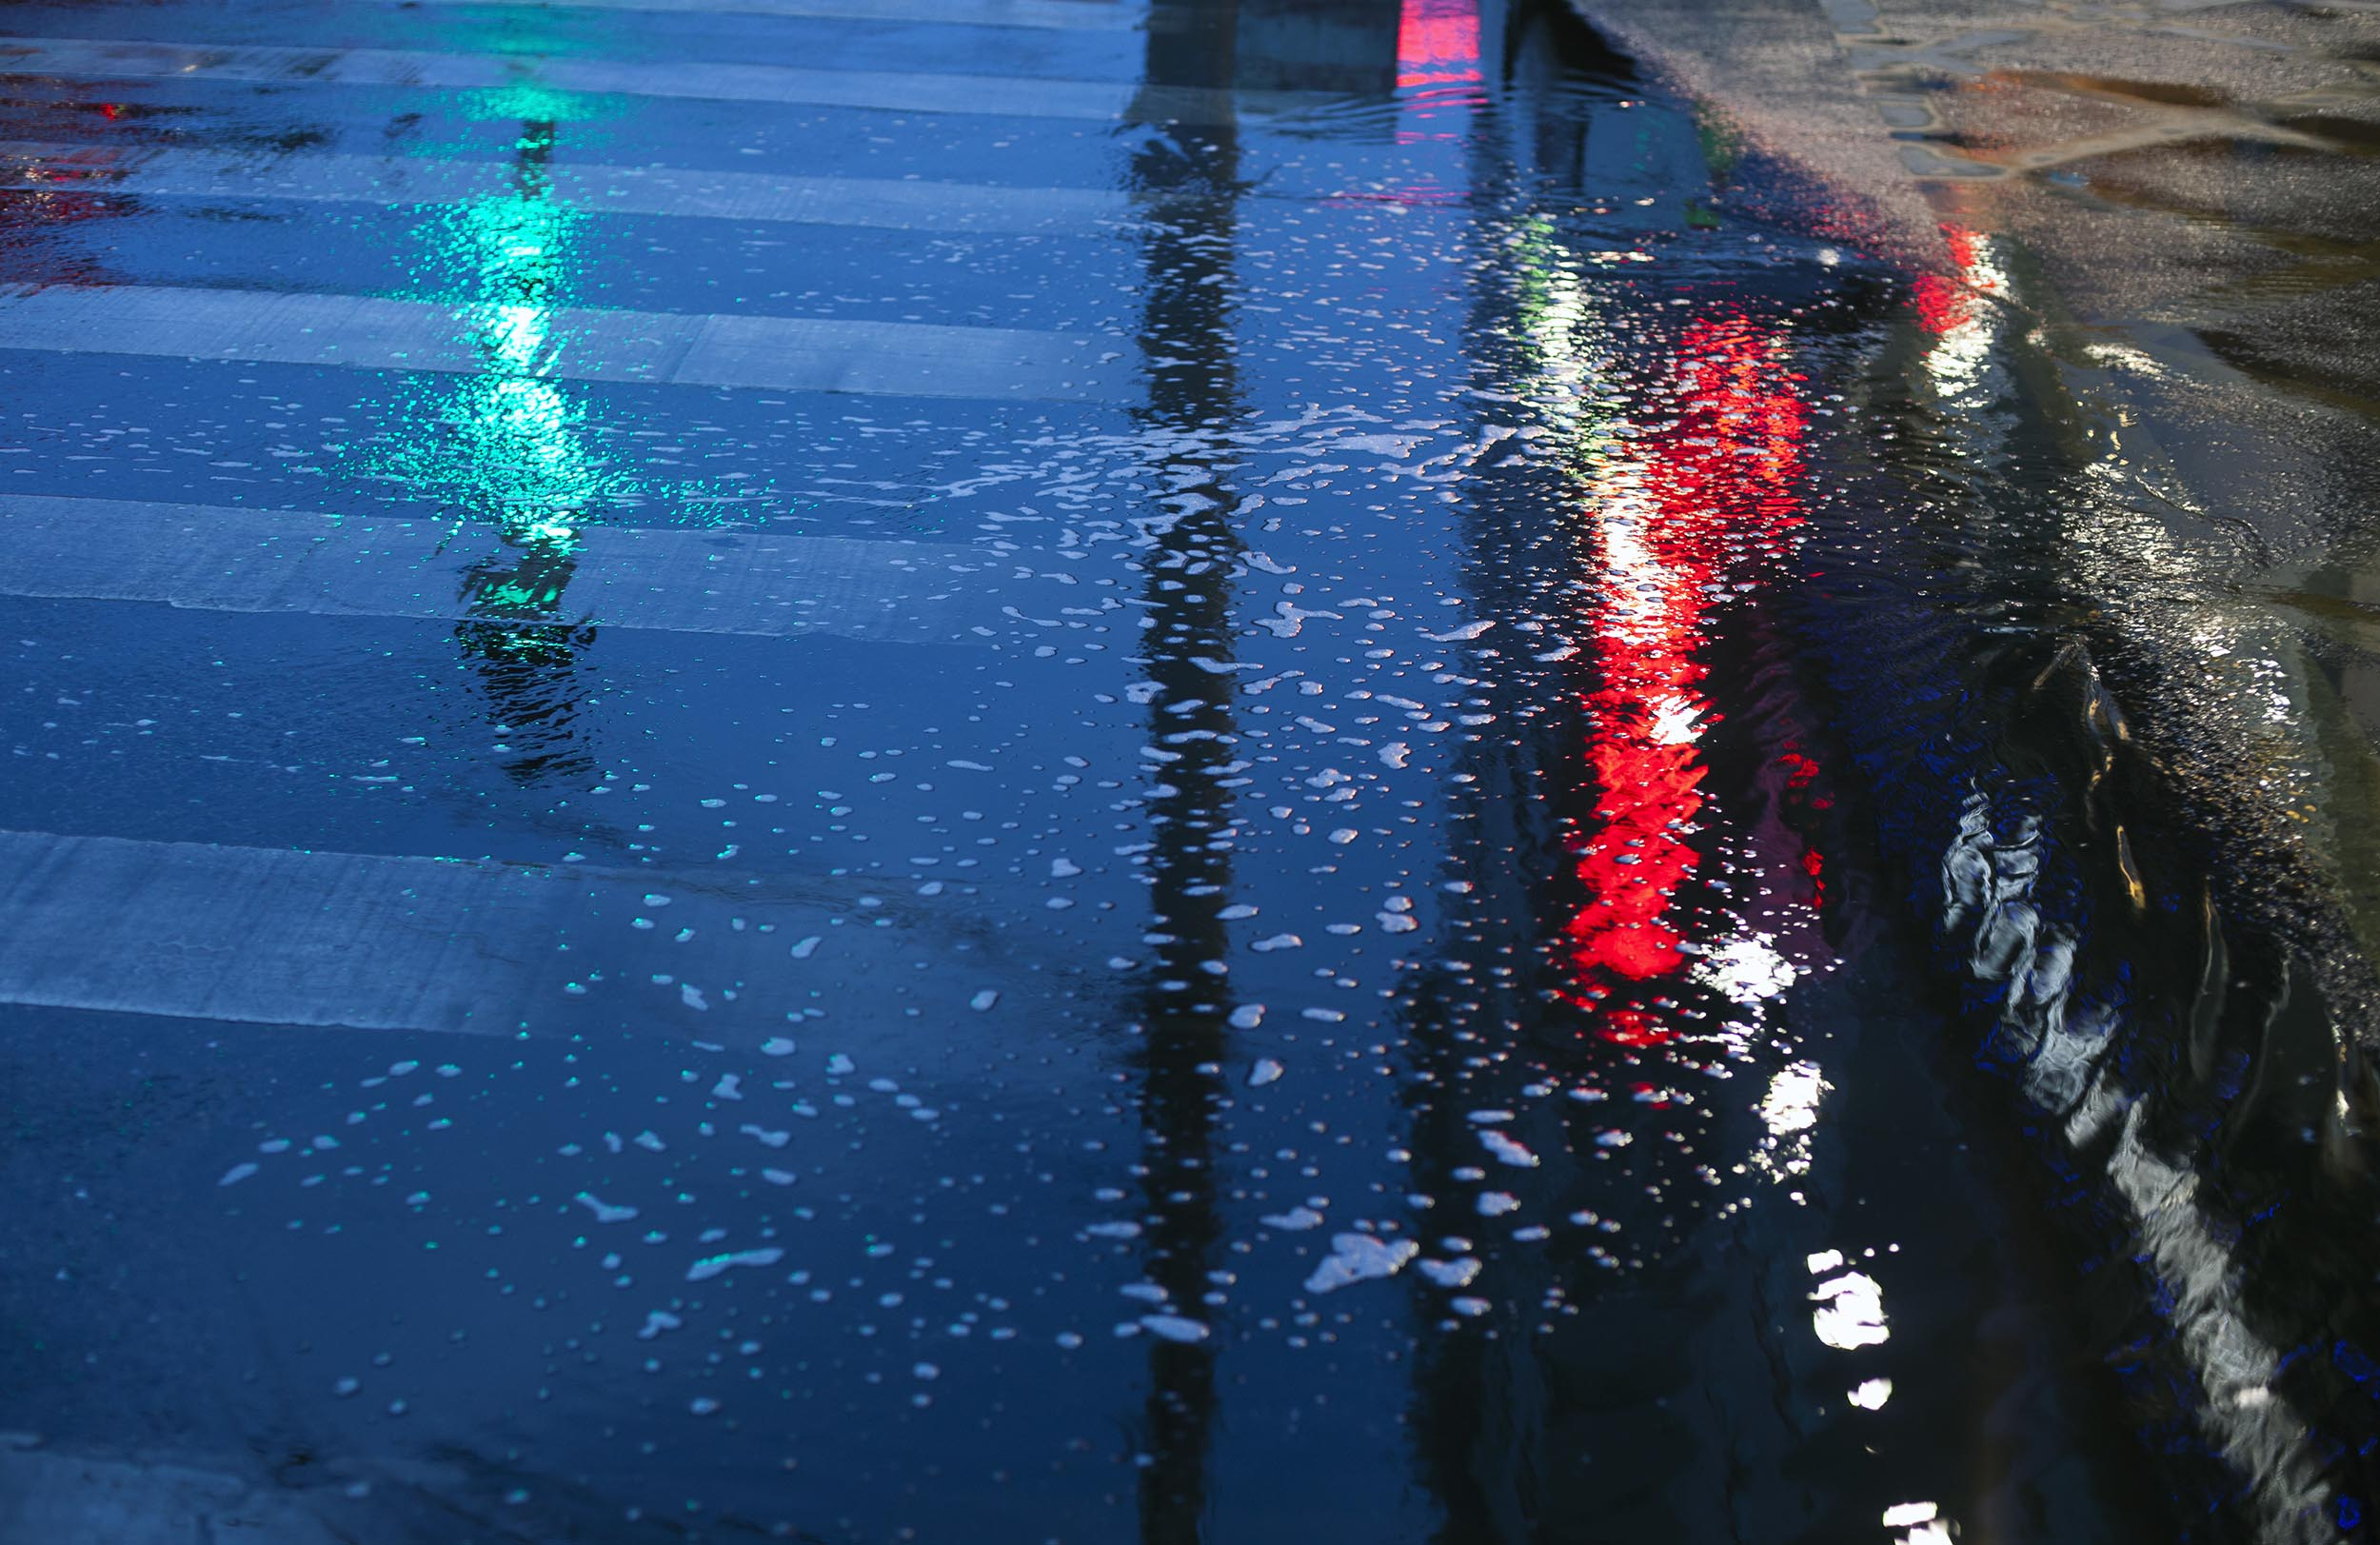 A photograph of reflections in a puddle Beijing, China  Photography for Beijing Government